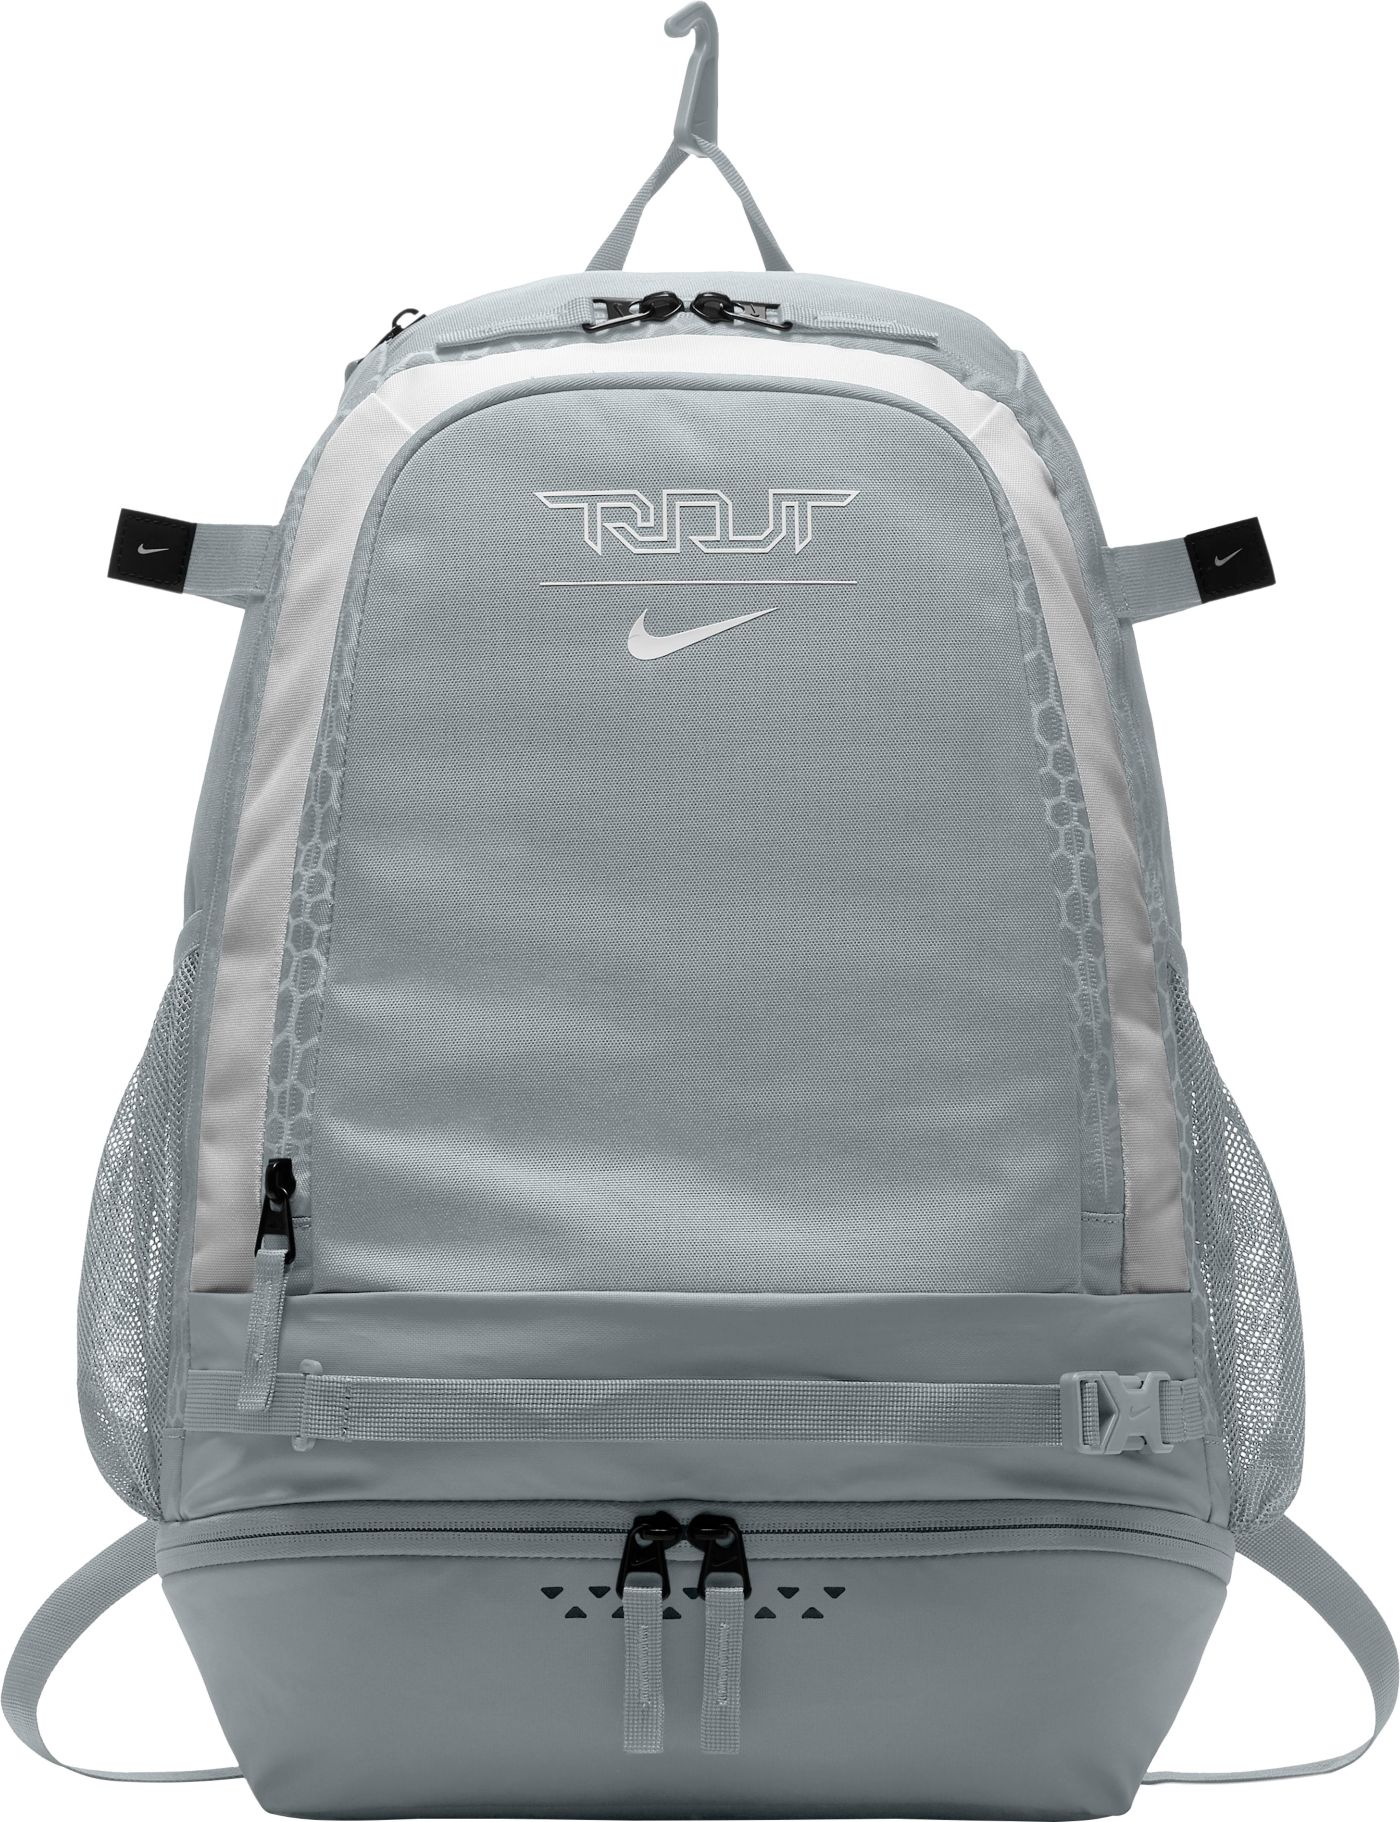 Nike Trout Vapor Bat Pack